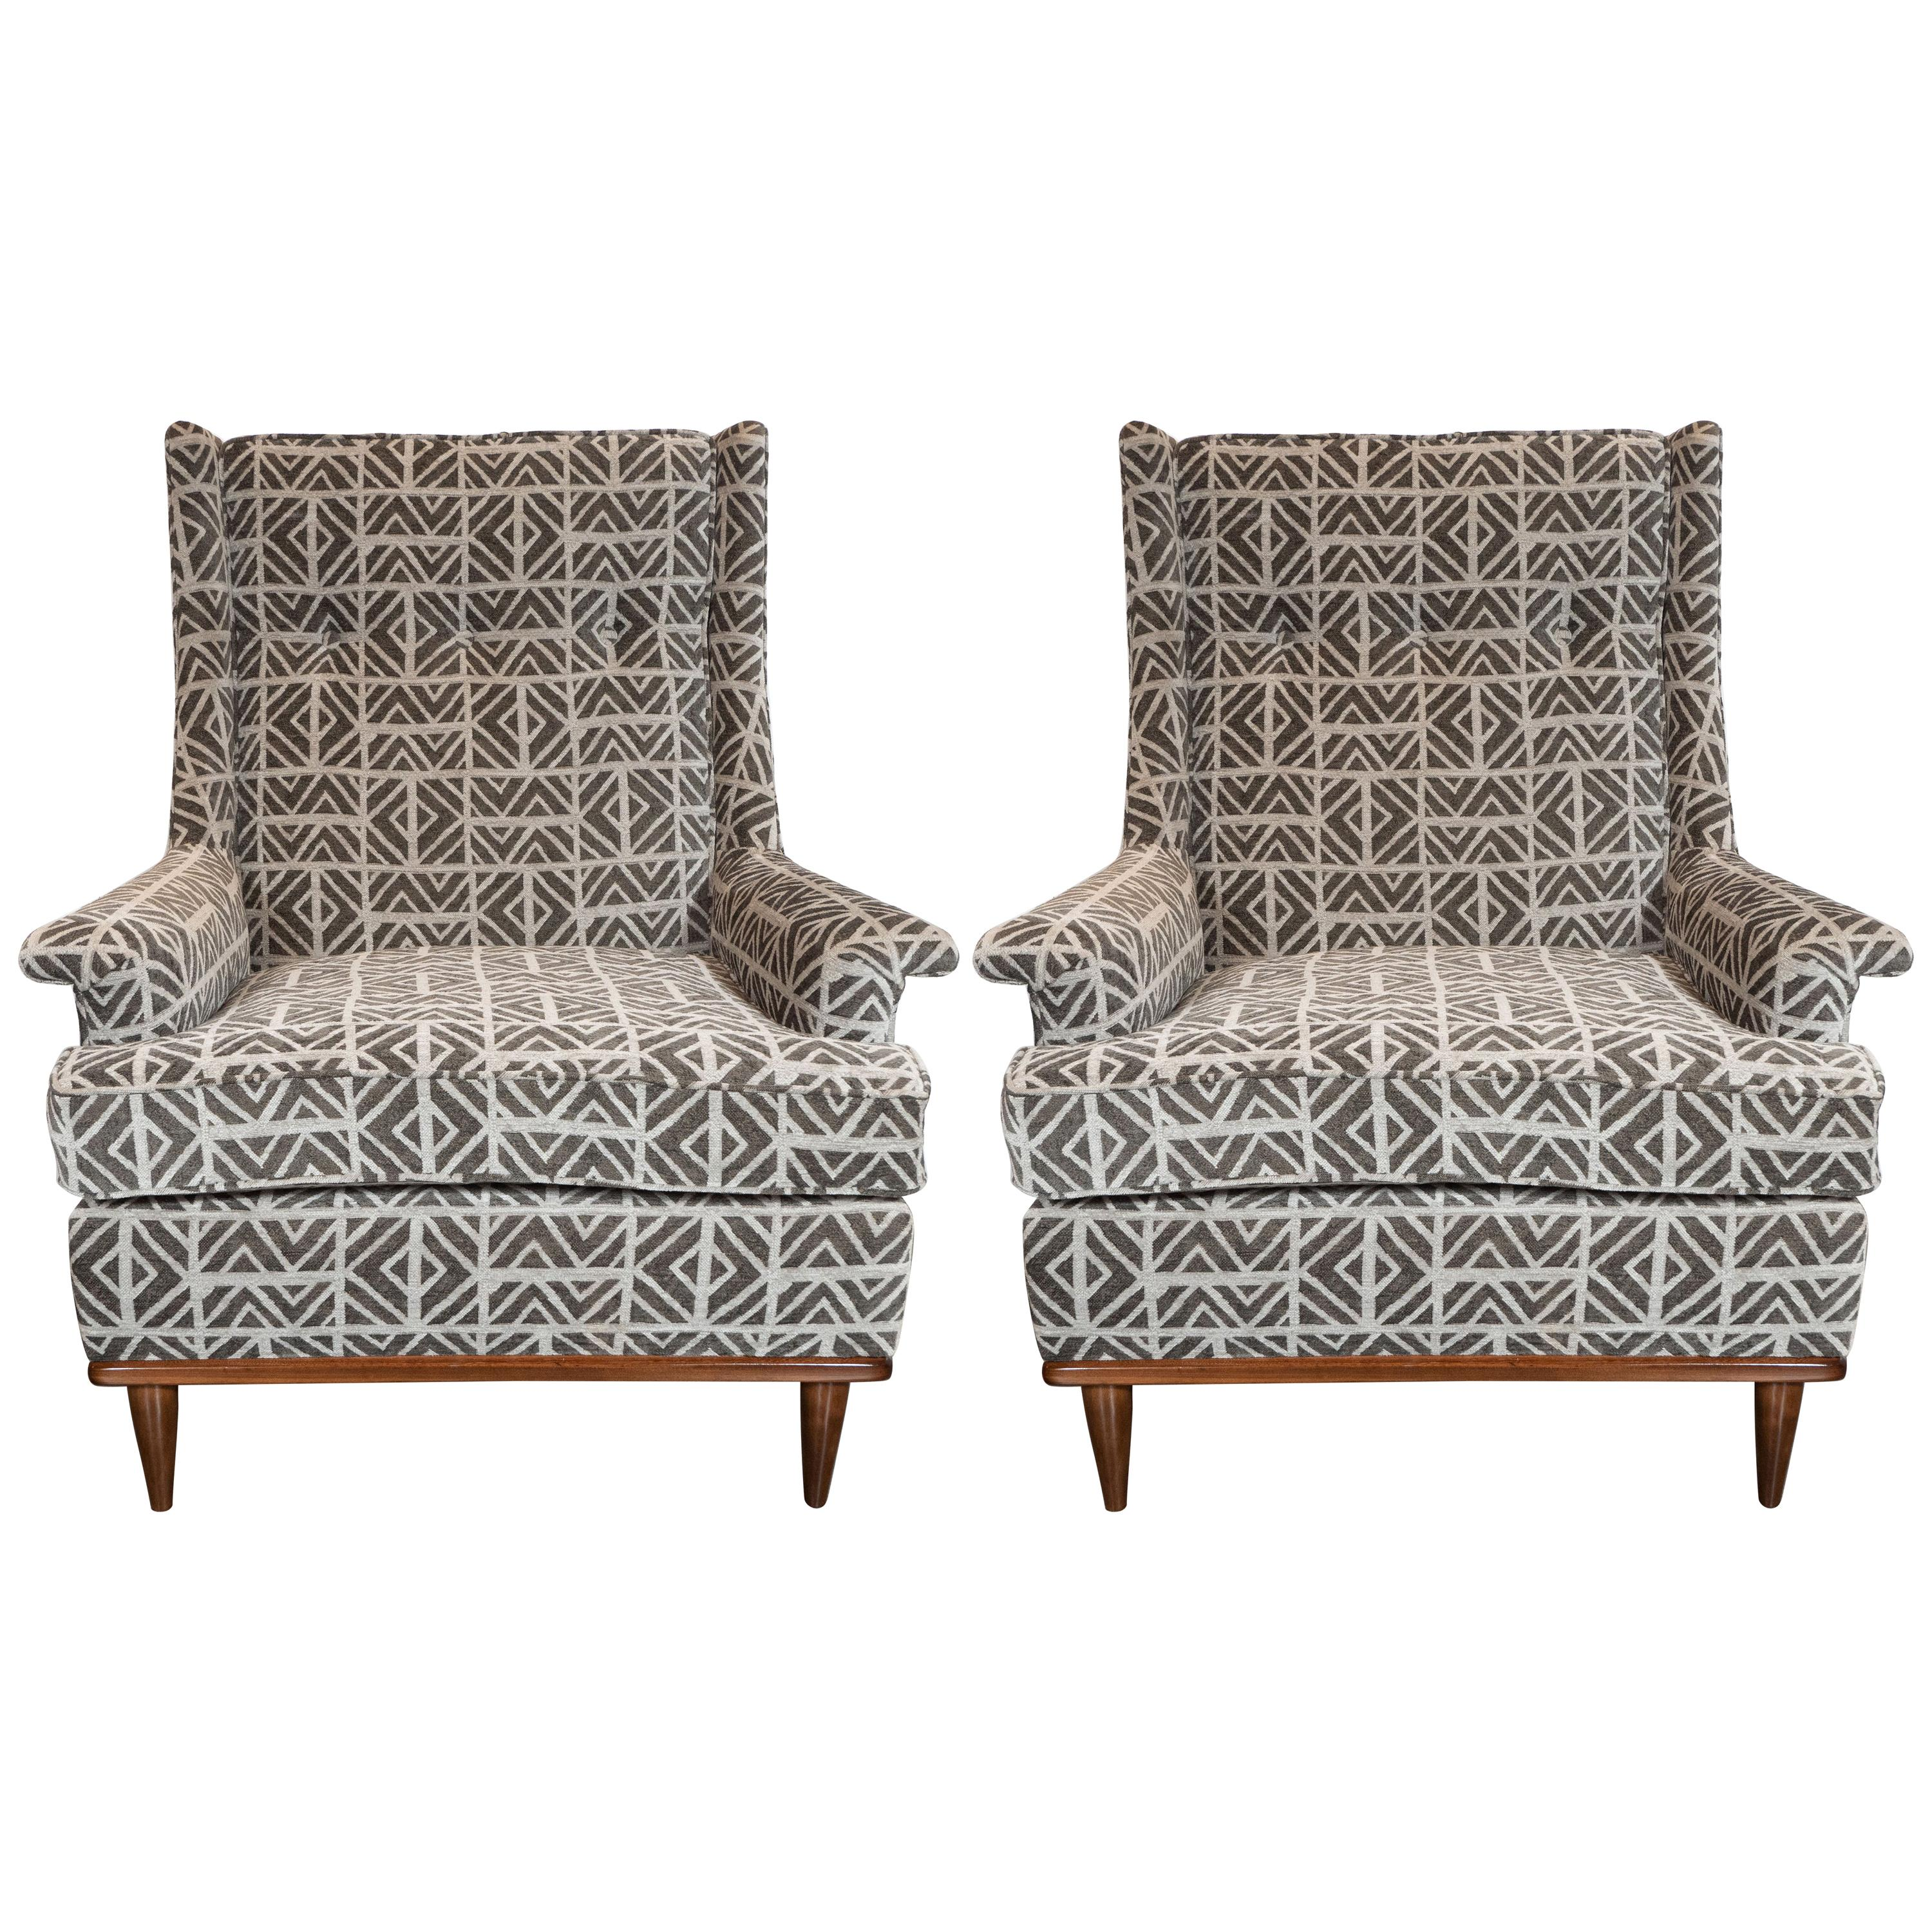 Midcentury Button Back Walnut Armchairs in Holly Hunt Great Plains Fabric